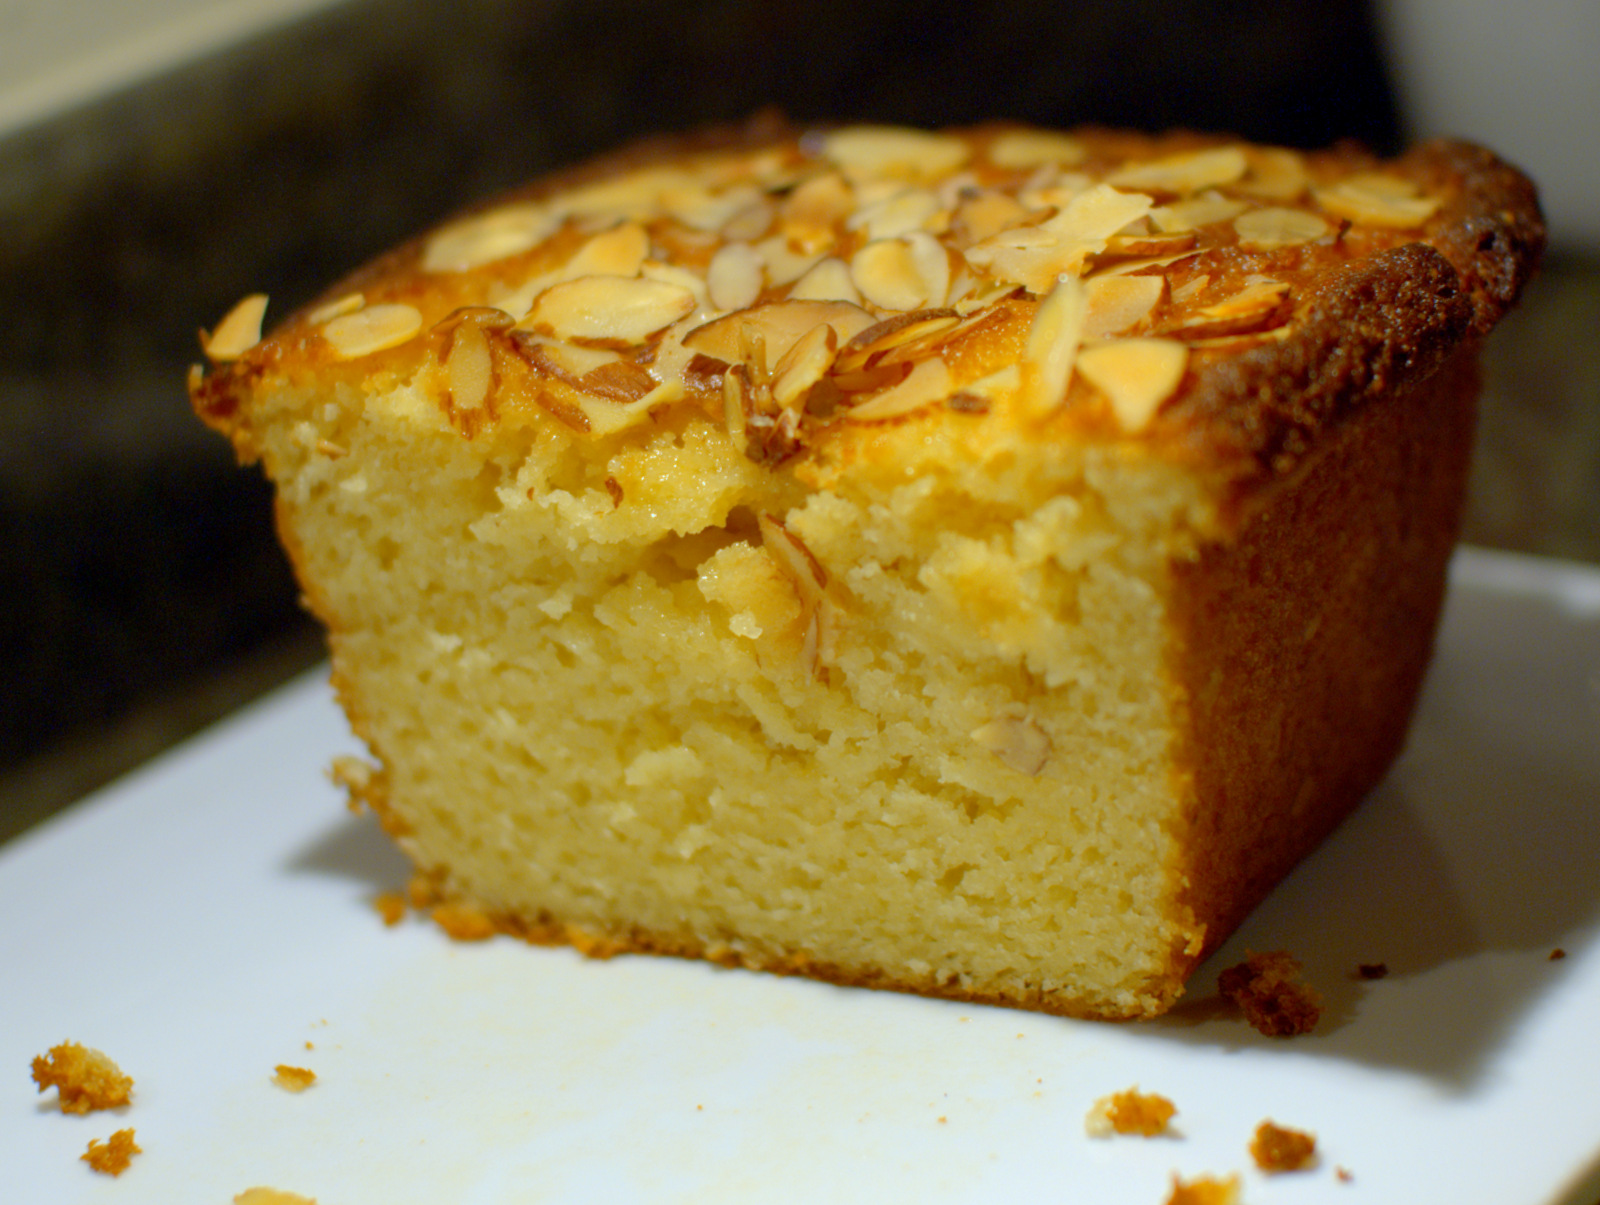 almond cake with orange flower almond cake w orange flower almond cake ...